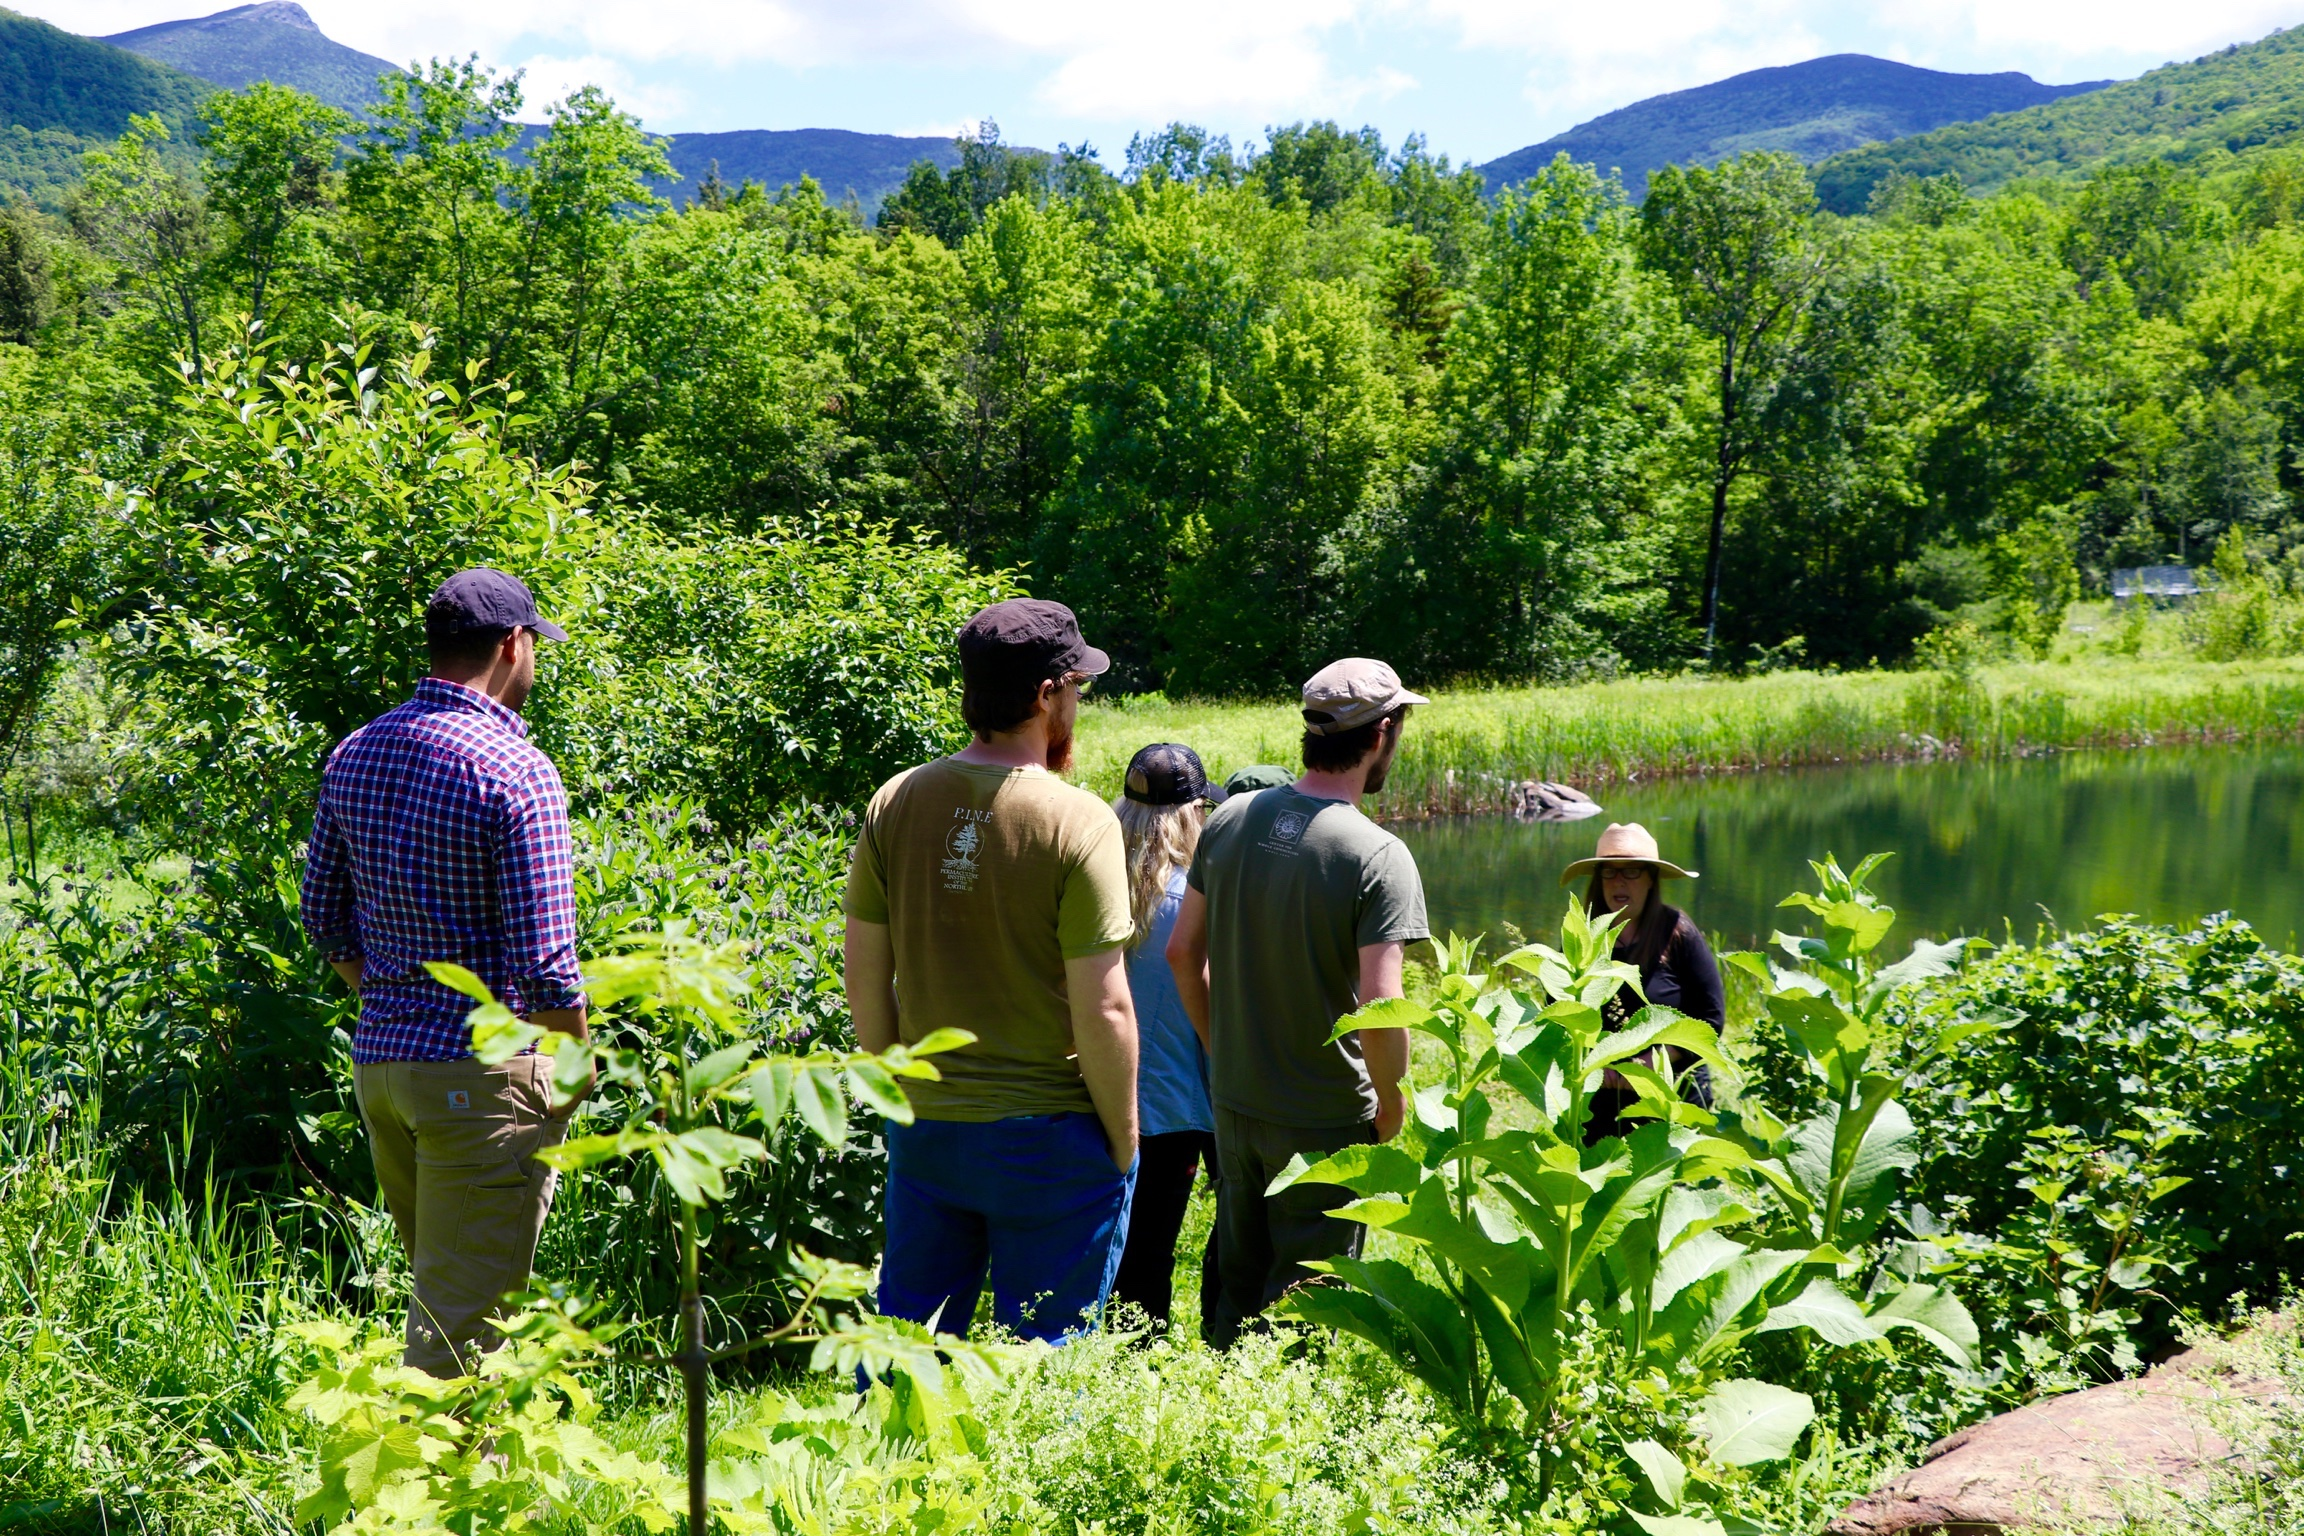 - The east gardens in our permaculture system: comfrey, currants, sea bukthorn, elderberry, blueberry, raspberry, pear and apple trees, horseradish, monarda (bee balm), and more.